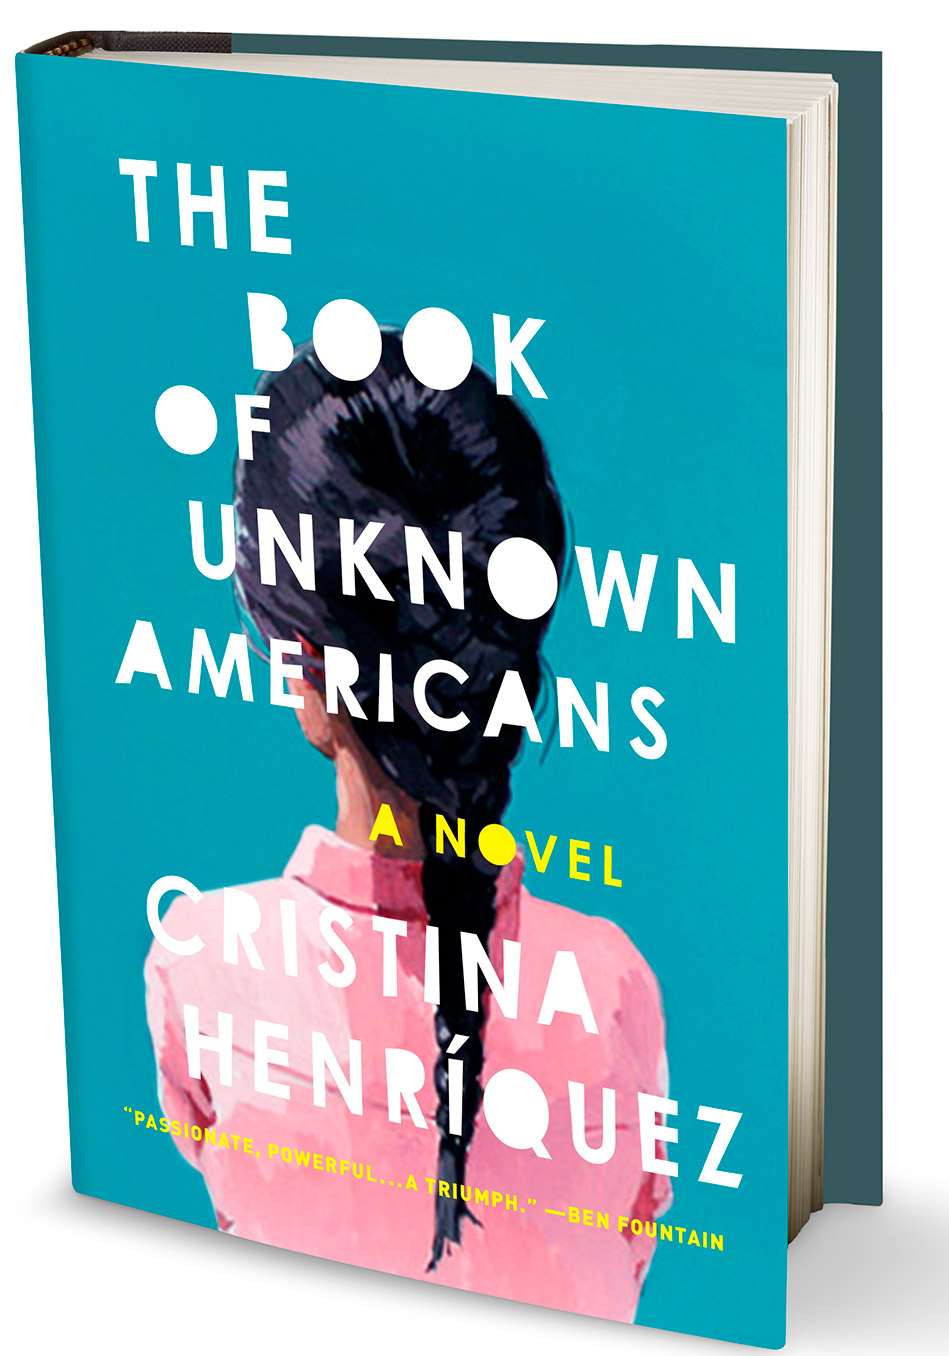 The Book of Unknown Americans by Christina Henríquez